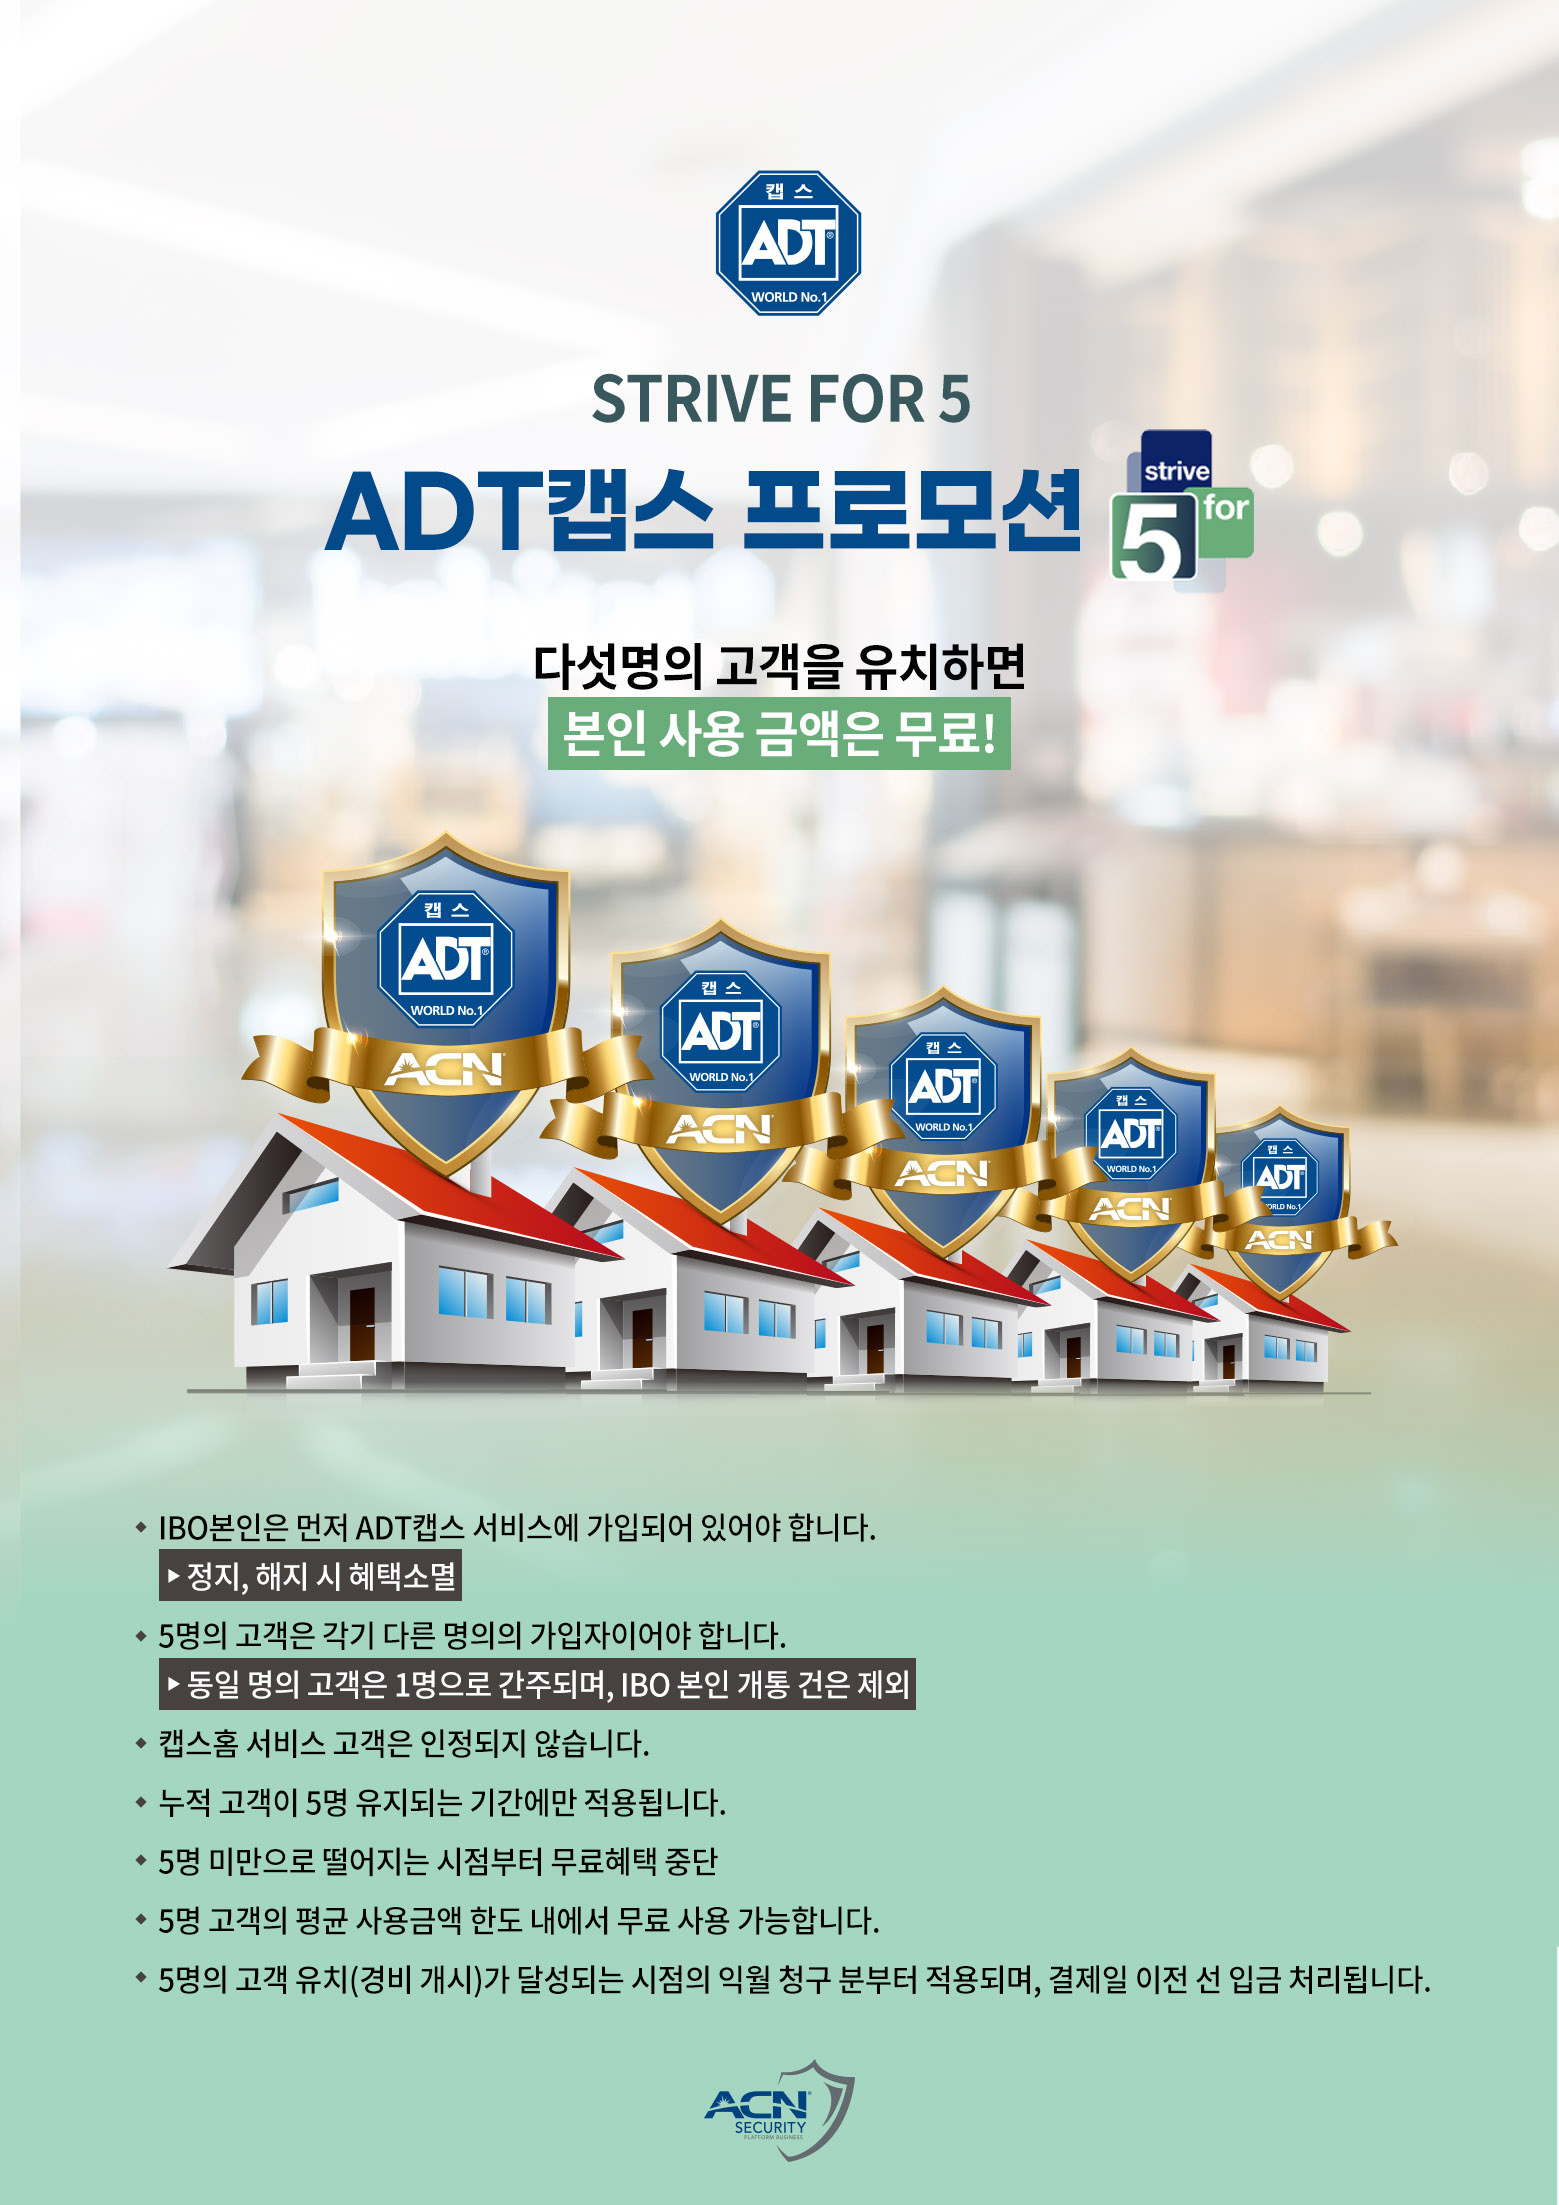 ADT캡스 Strive for 5